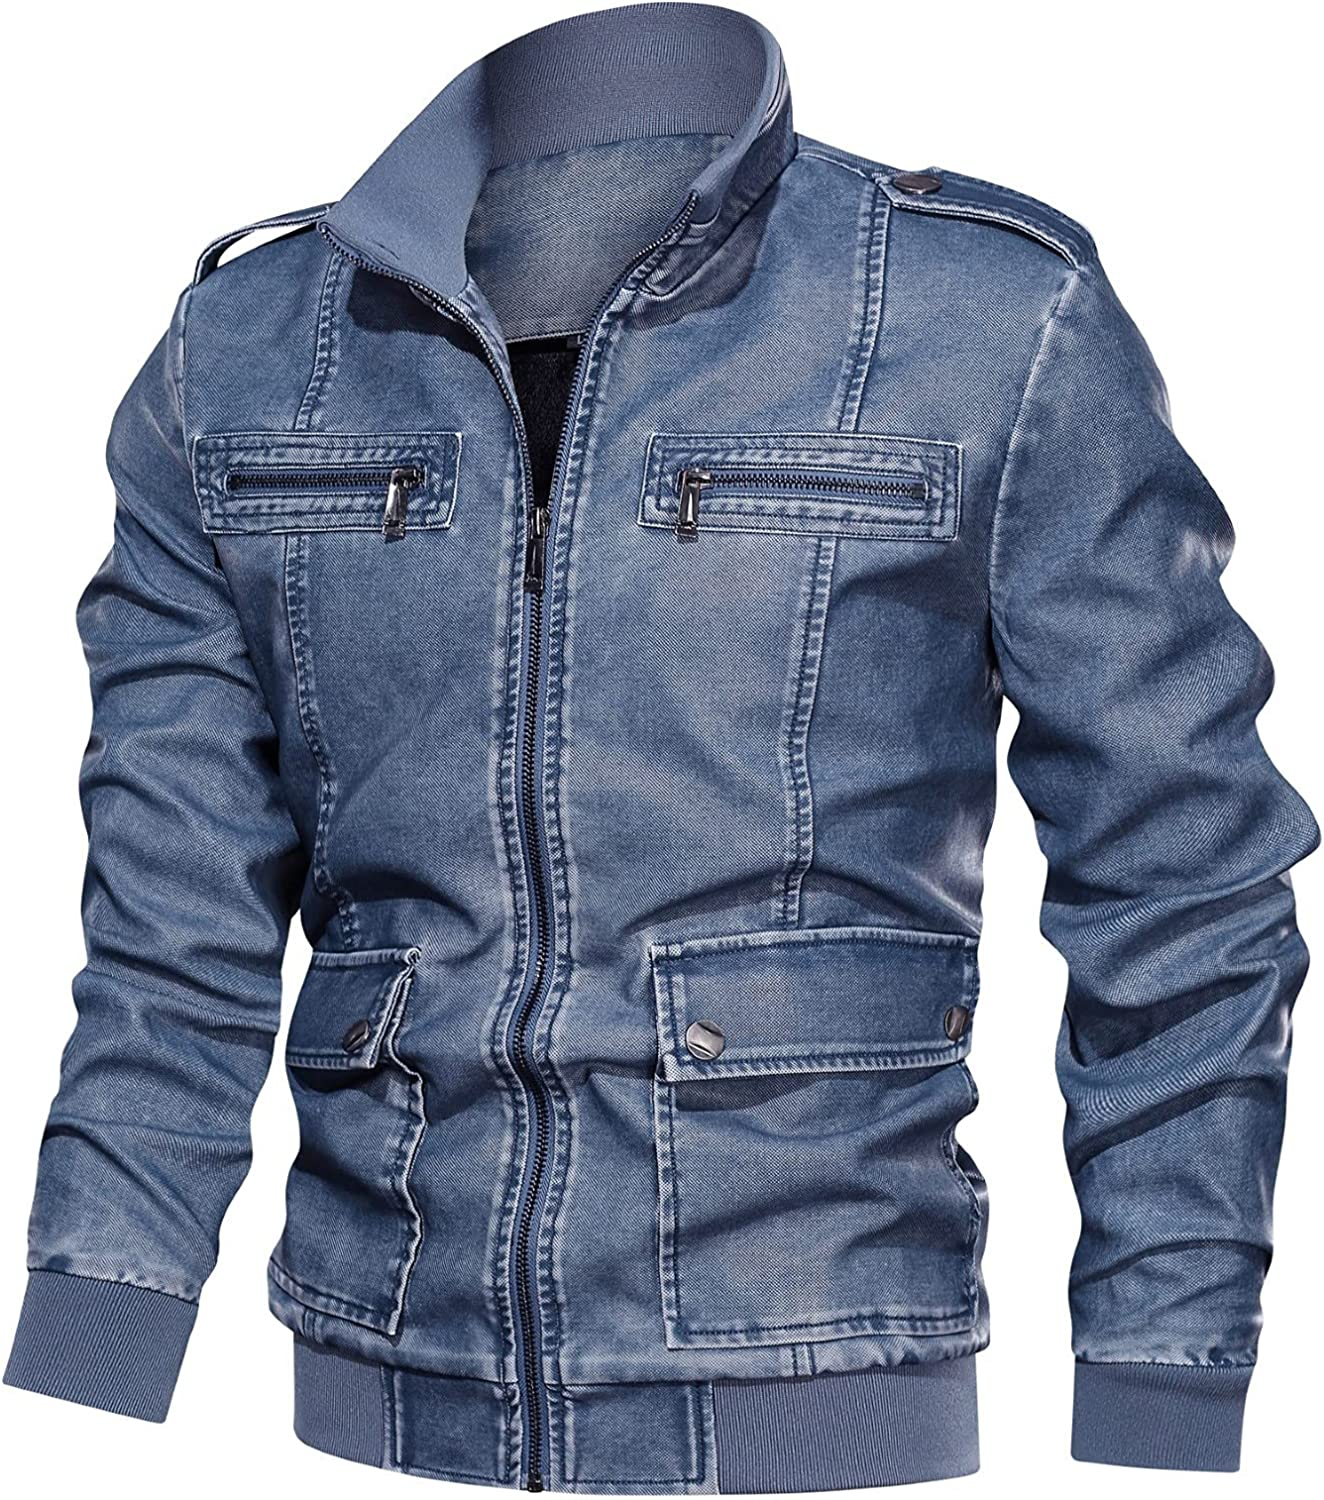 Men Motorcycle Faux Leather Jacket Slim Fit Bomber Jackets Casual Stand Collar Pu Leather Zip Up Jackets Coats